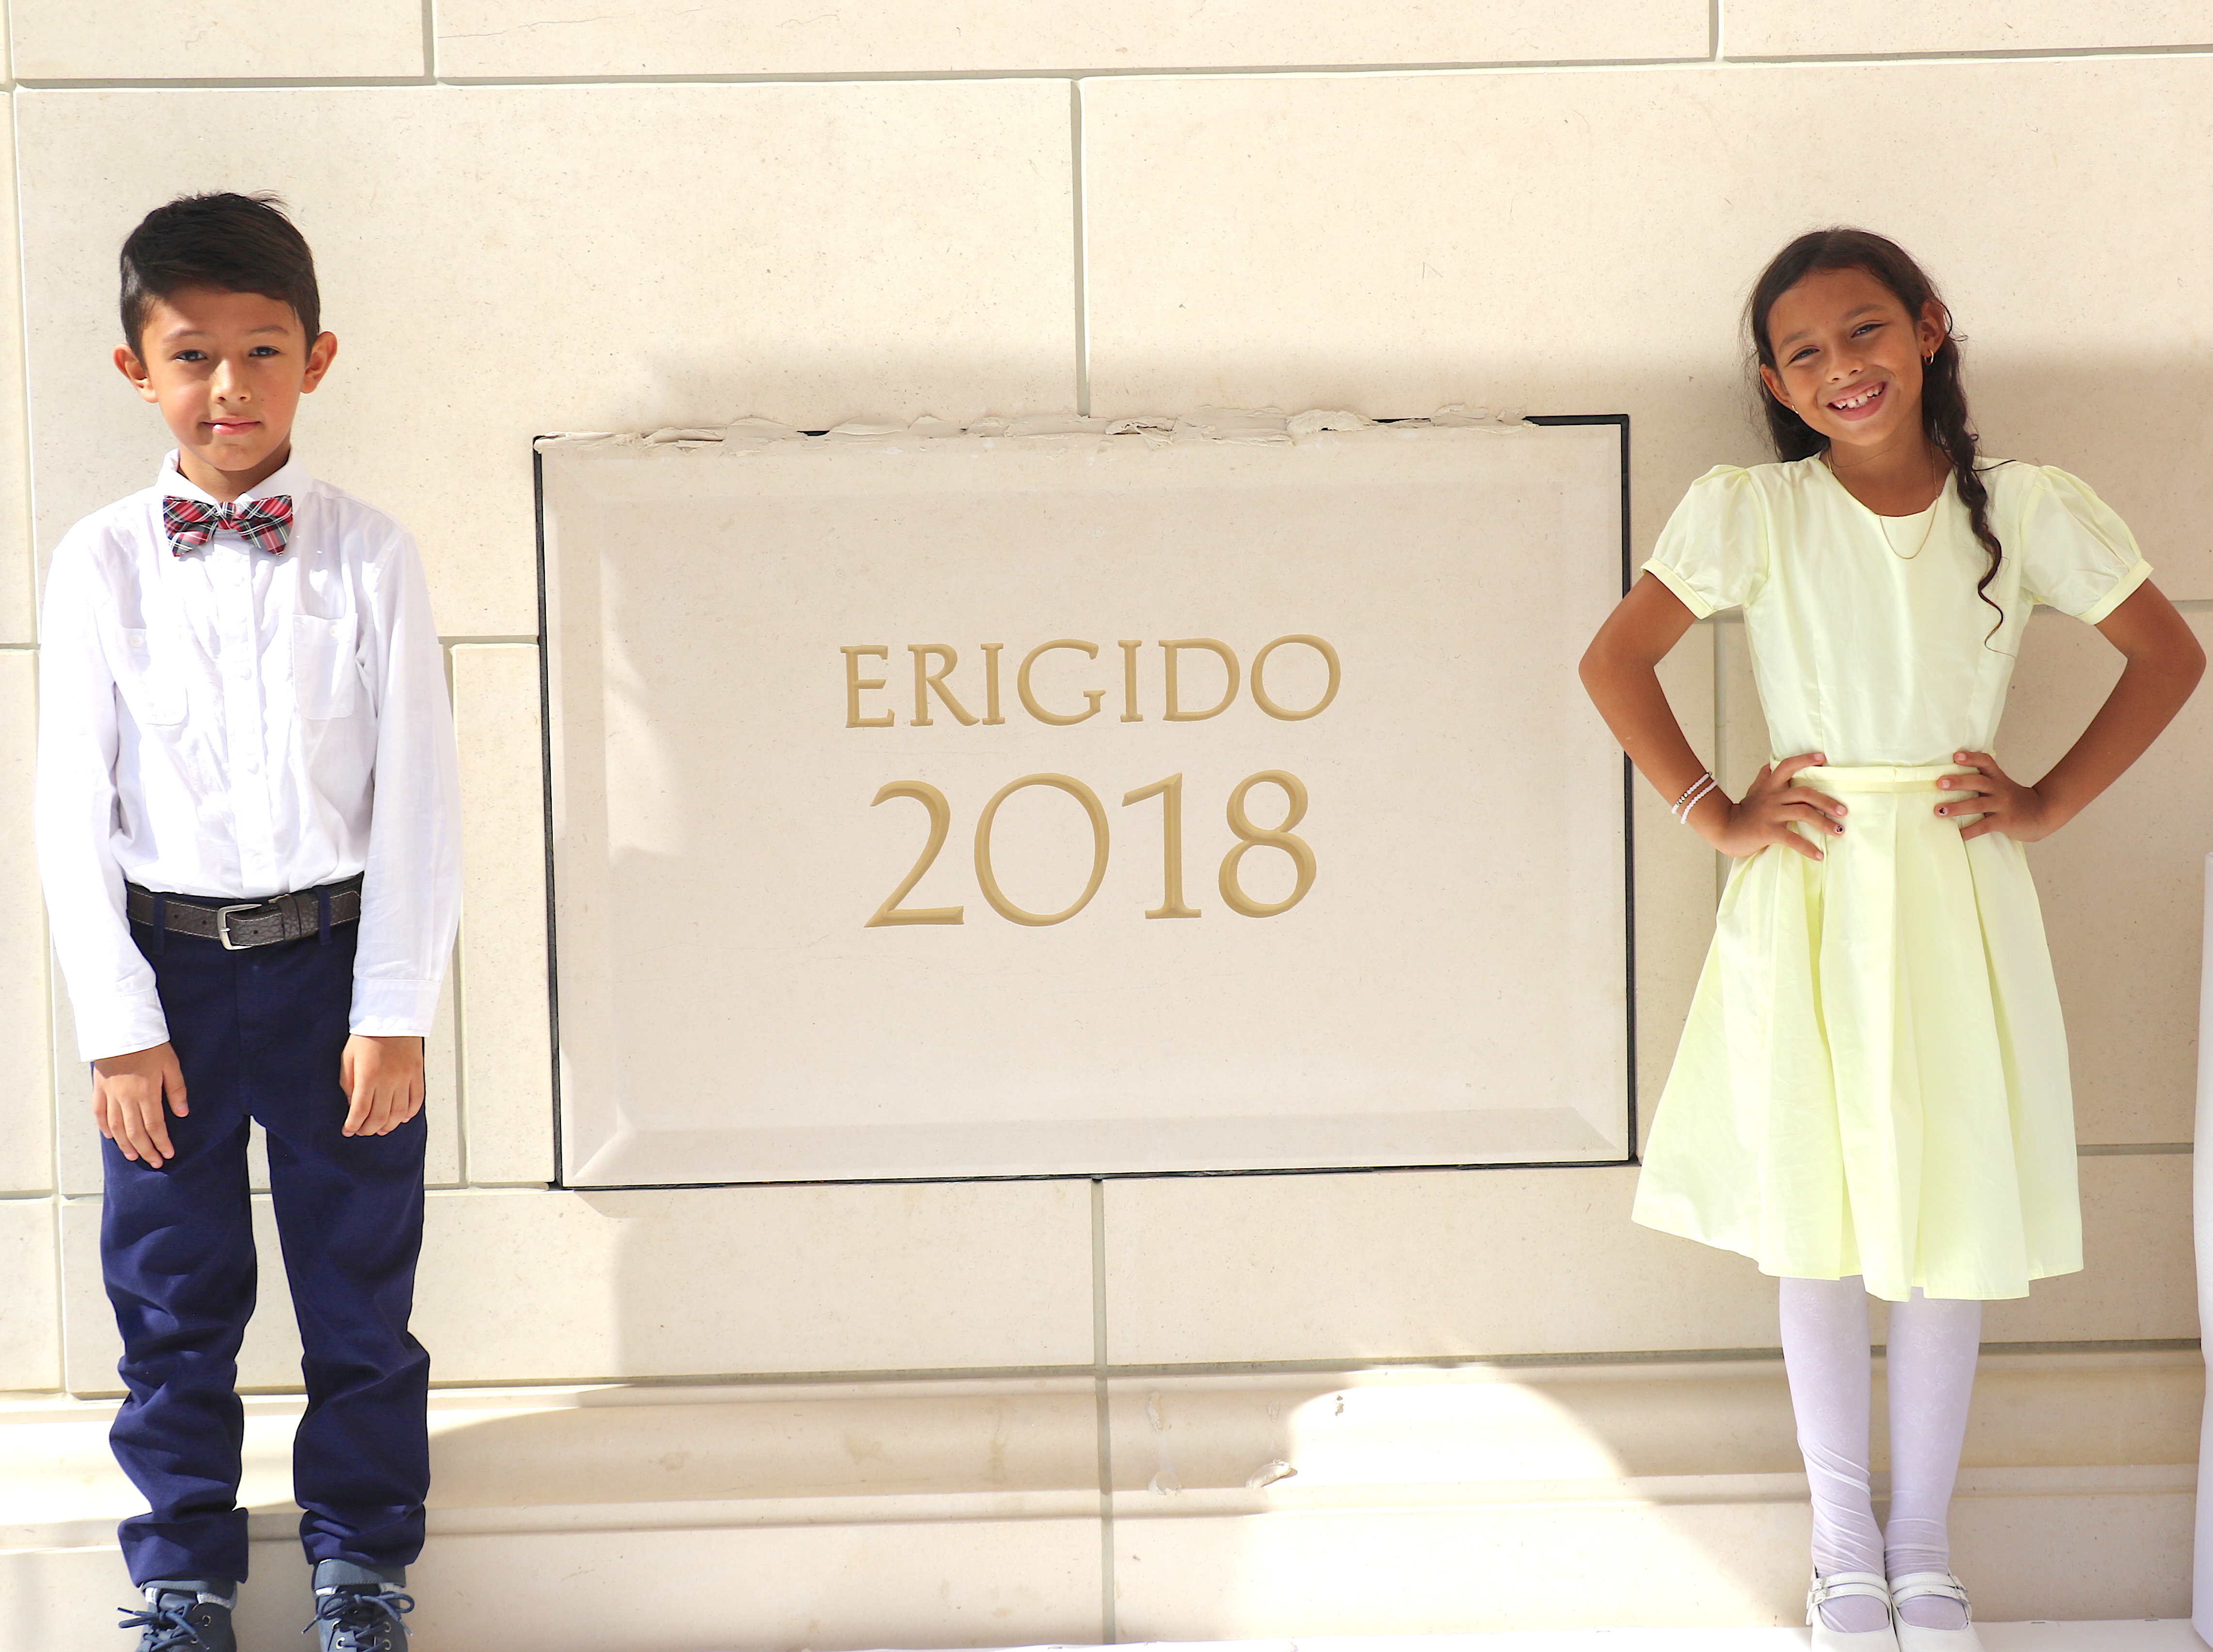 Martin Garzon and Jocelyn Rodriquez represented the Colombian youth in placing mortar on the capstone of the Barranquilla Colombia Temple on Dec. 9, 2018.